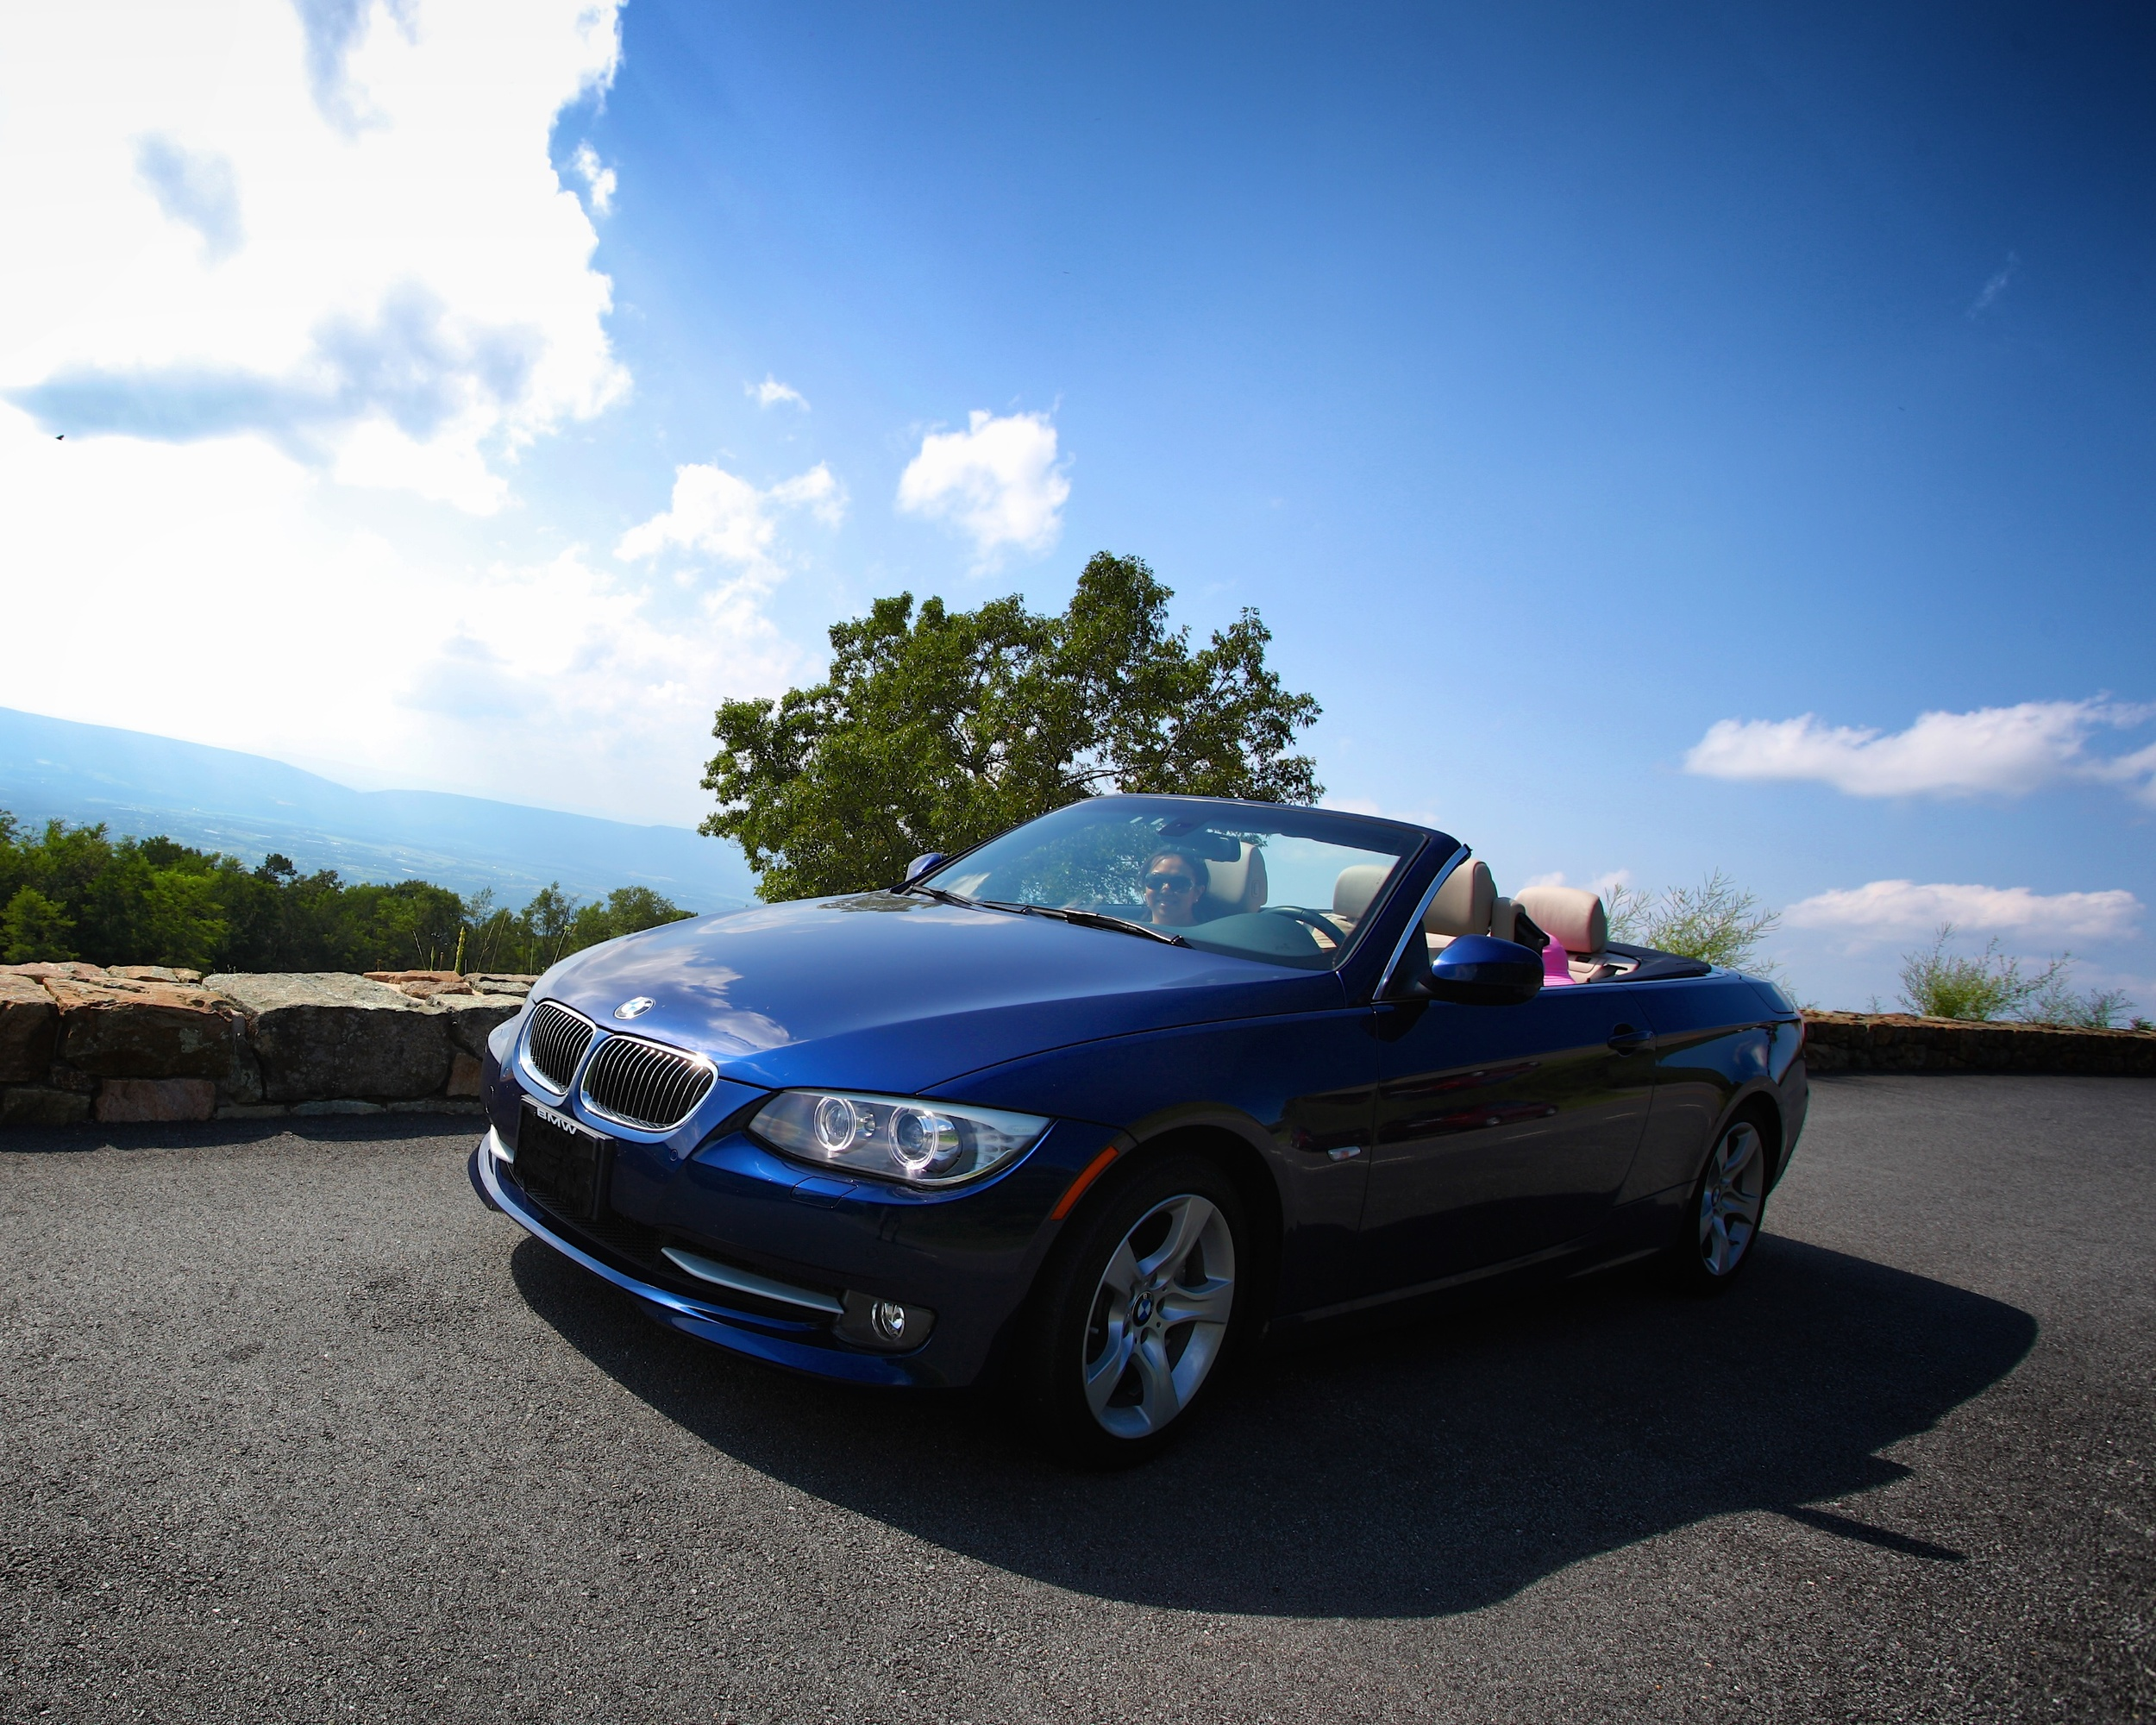 """I had been a petrol head my entire life, but never really had a """"real"""" car. We love this thing, and take it just about everywhere! There's room for four! As of 2016, I'm still driving this car, and loving every minute of it. :)"""